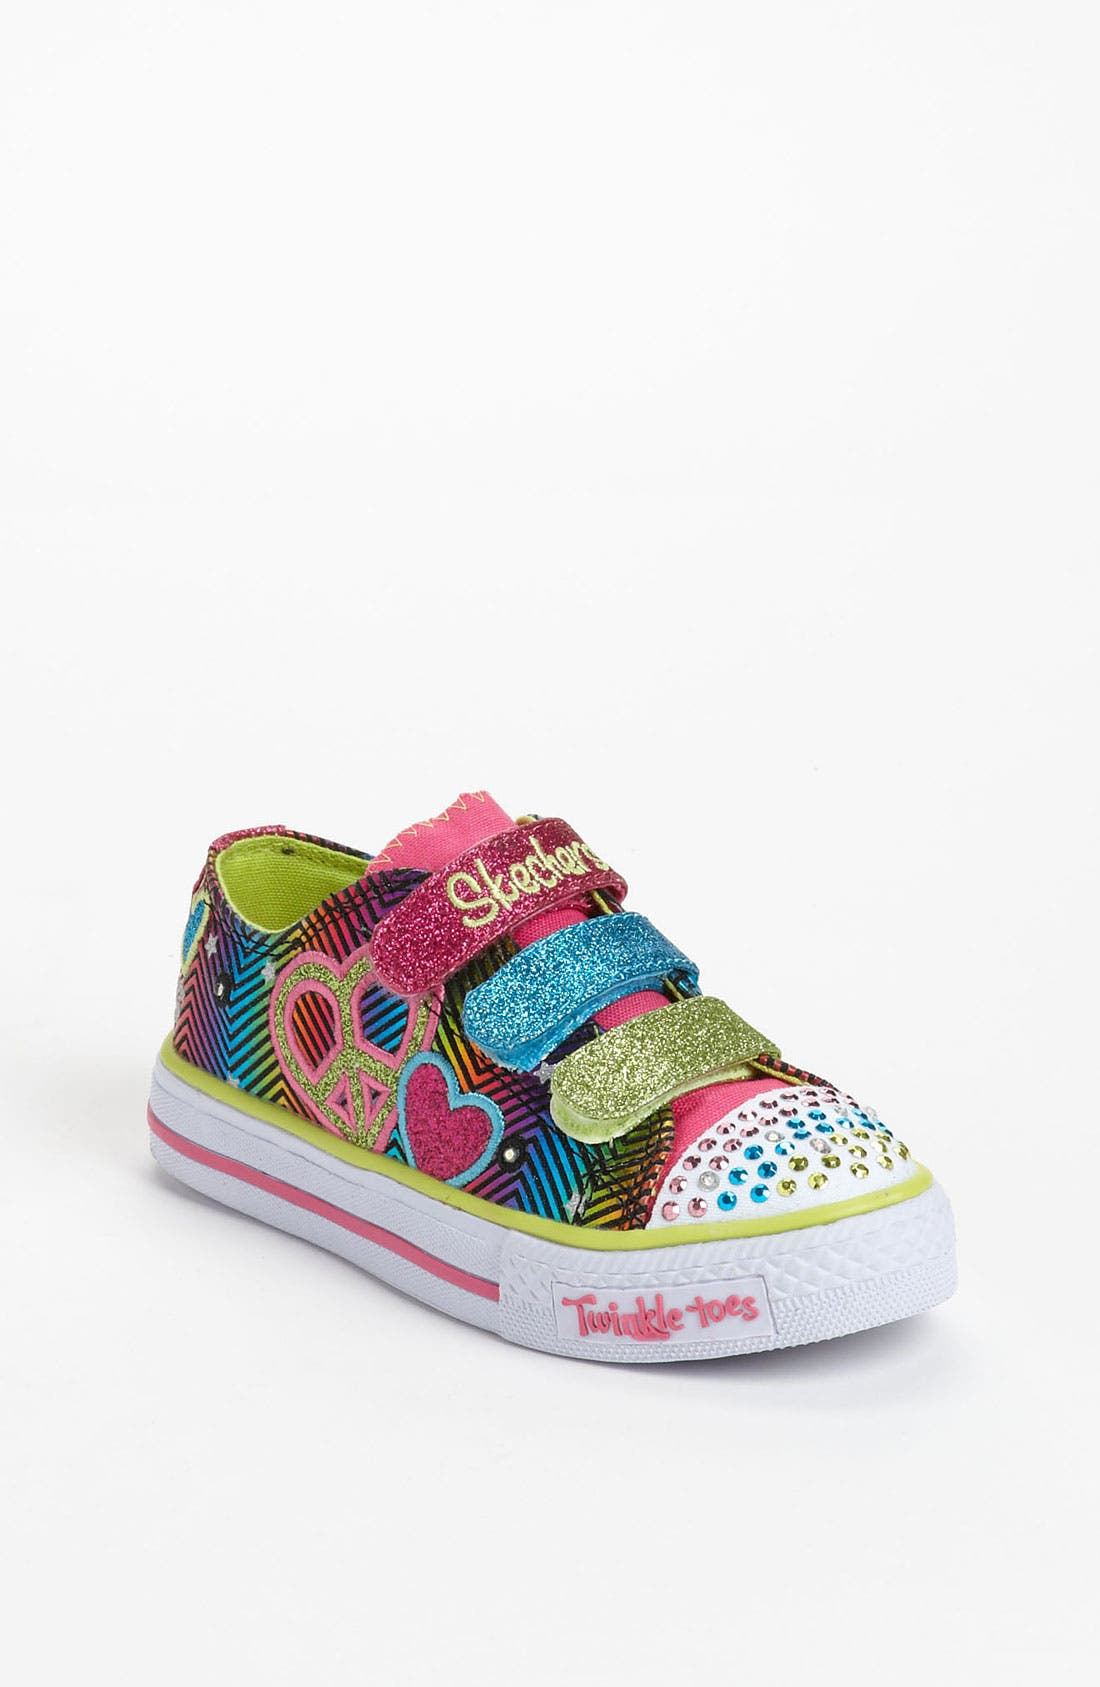 Main Image - SKECHERS 'Shuffles - Baby Luv' Sneaker (Toddler & Little Kid)